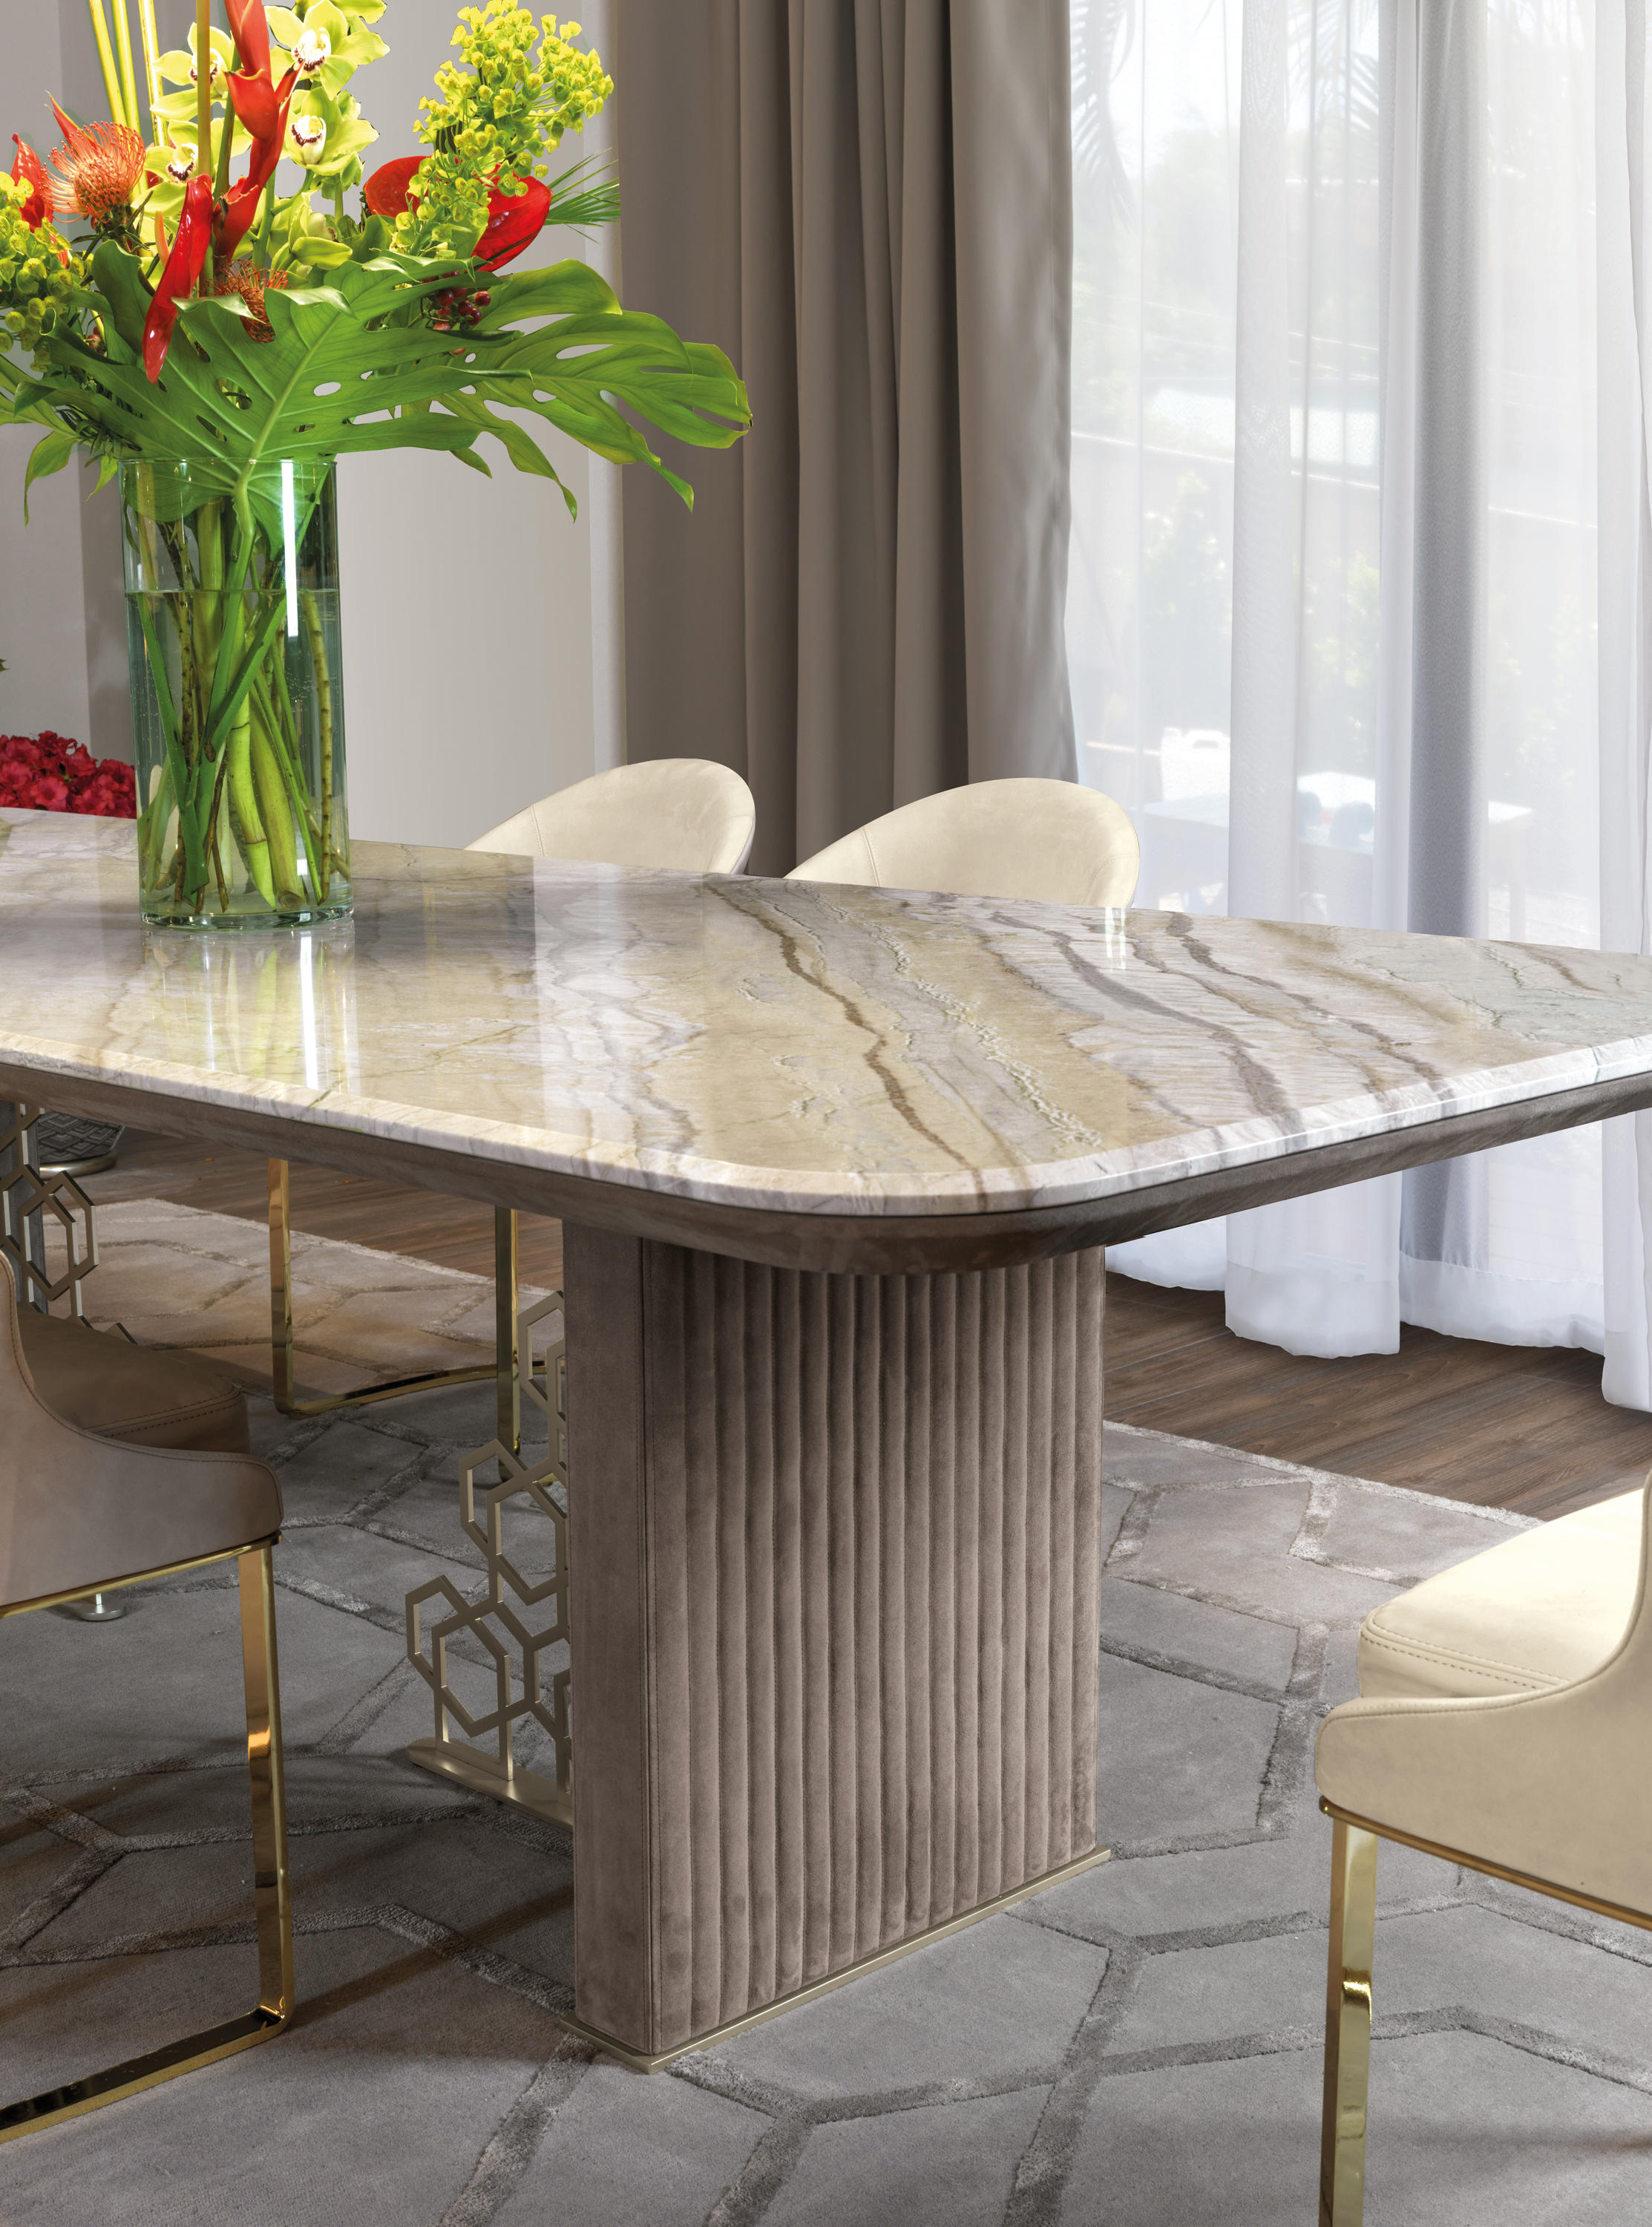 ... Excelsior By Longhi S.p.a. | Dining Tables ...